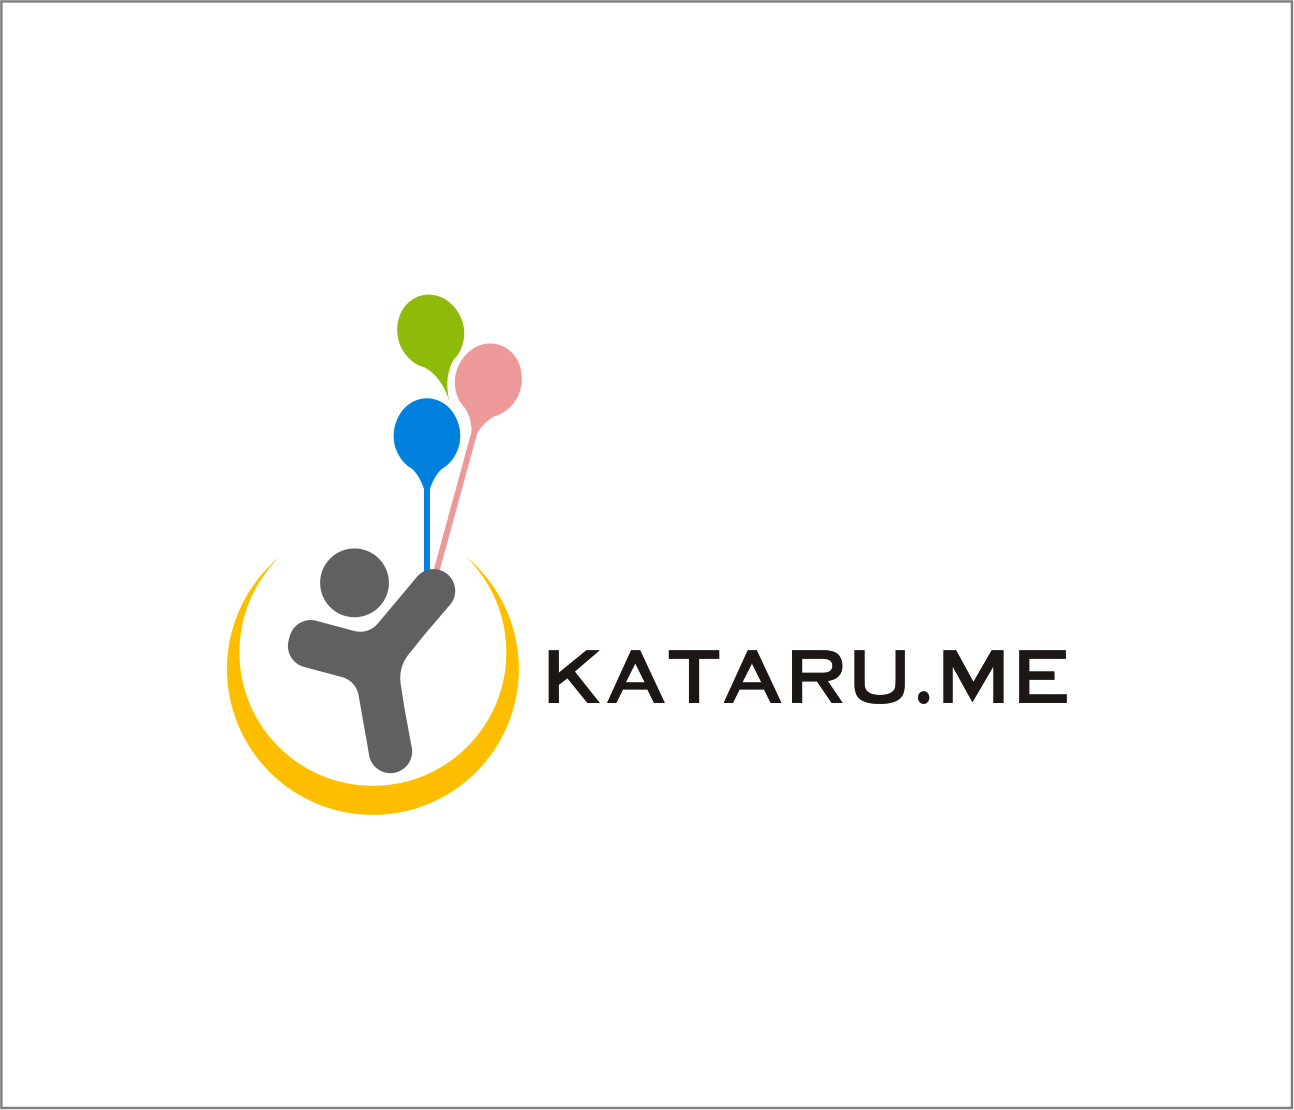 Logo Design by Armada Jamaluddin - Entry No. 58 in the Logo Design Contest Inspiring Logo Design for KATARU.ME.